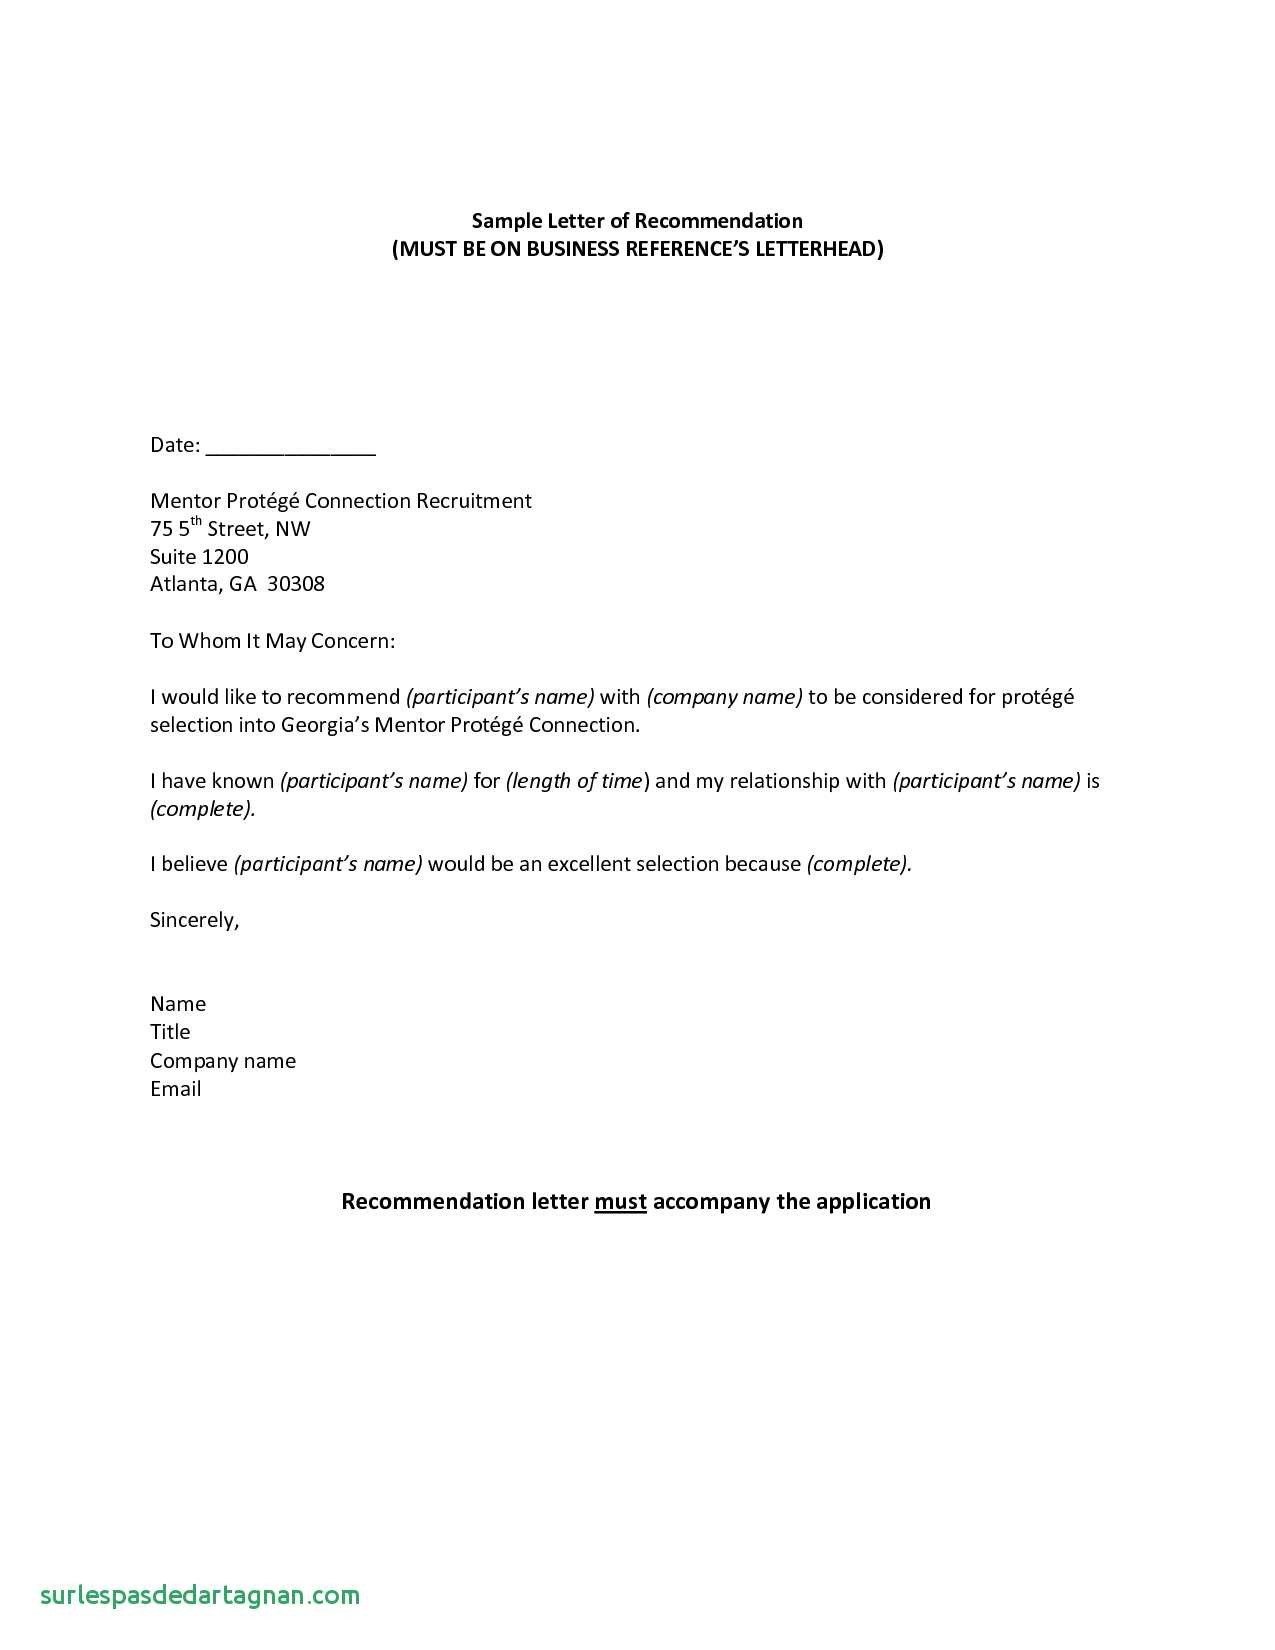 Business reference letter template word samples letter templates business reference letter template word business re mendation letter template save 31 new reference letter cheaphphosting Images